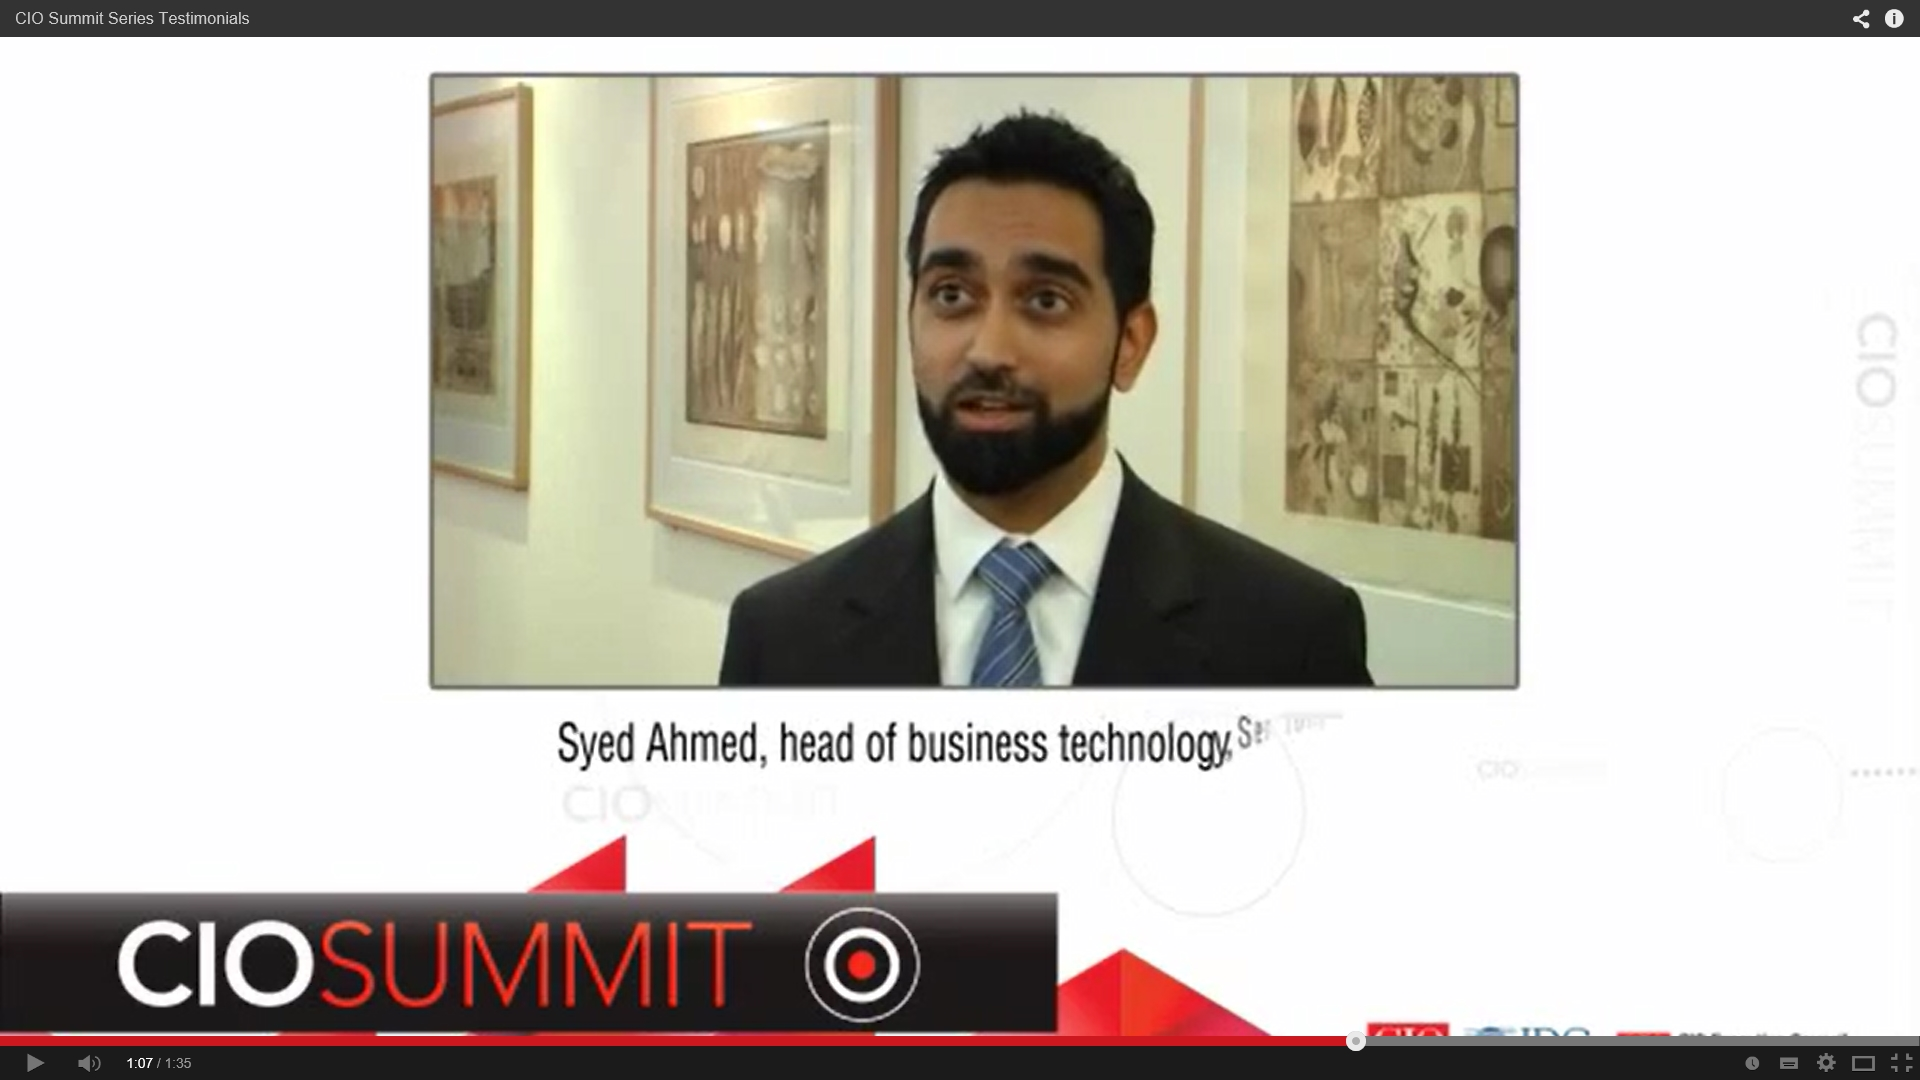 Syed Ahmed - CIO Summit Testimonial